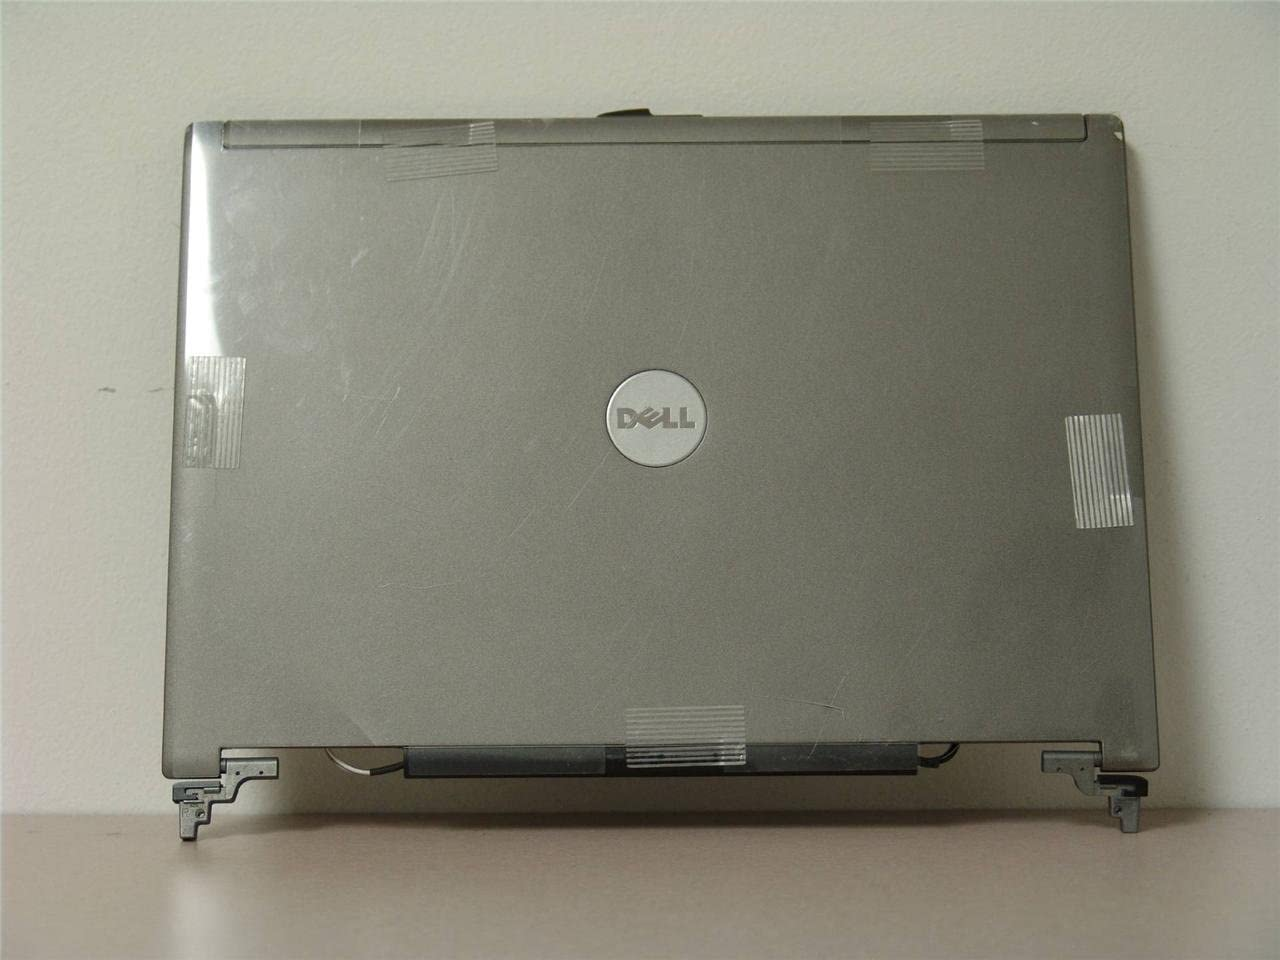 Dell OEM Latitude D620 D630 LCD Back Cover Top Lid Hinges YT450